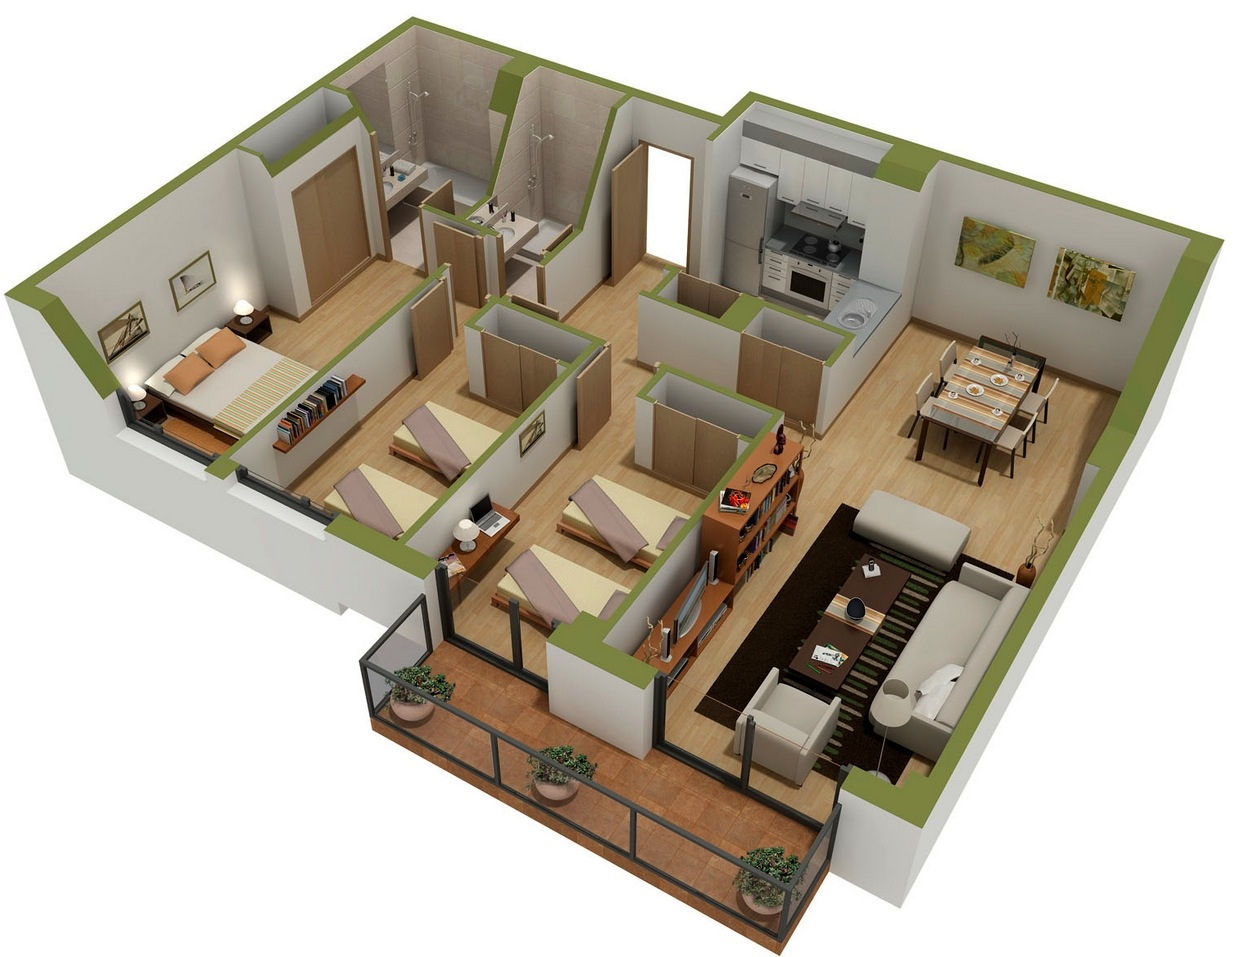 25 three bedroom house apartment floor plans for Design home floor plans